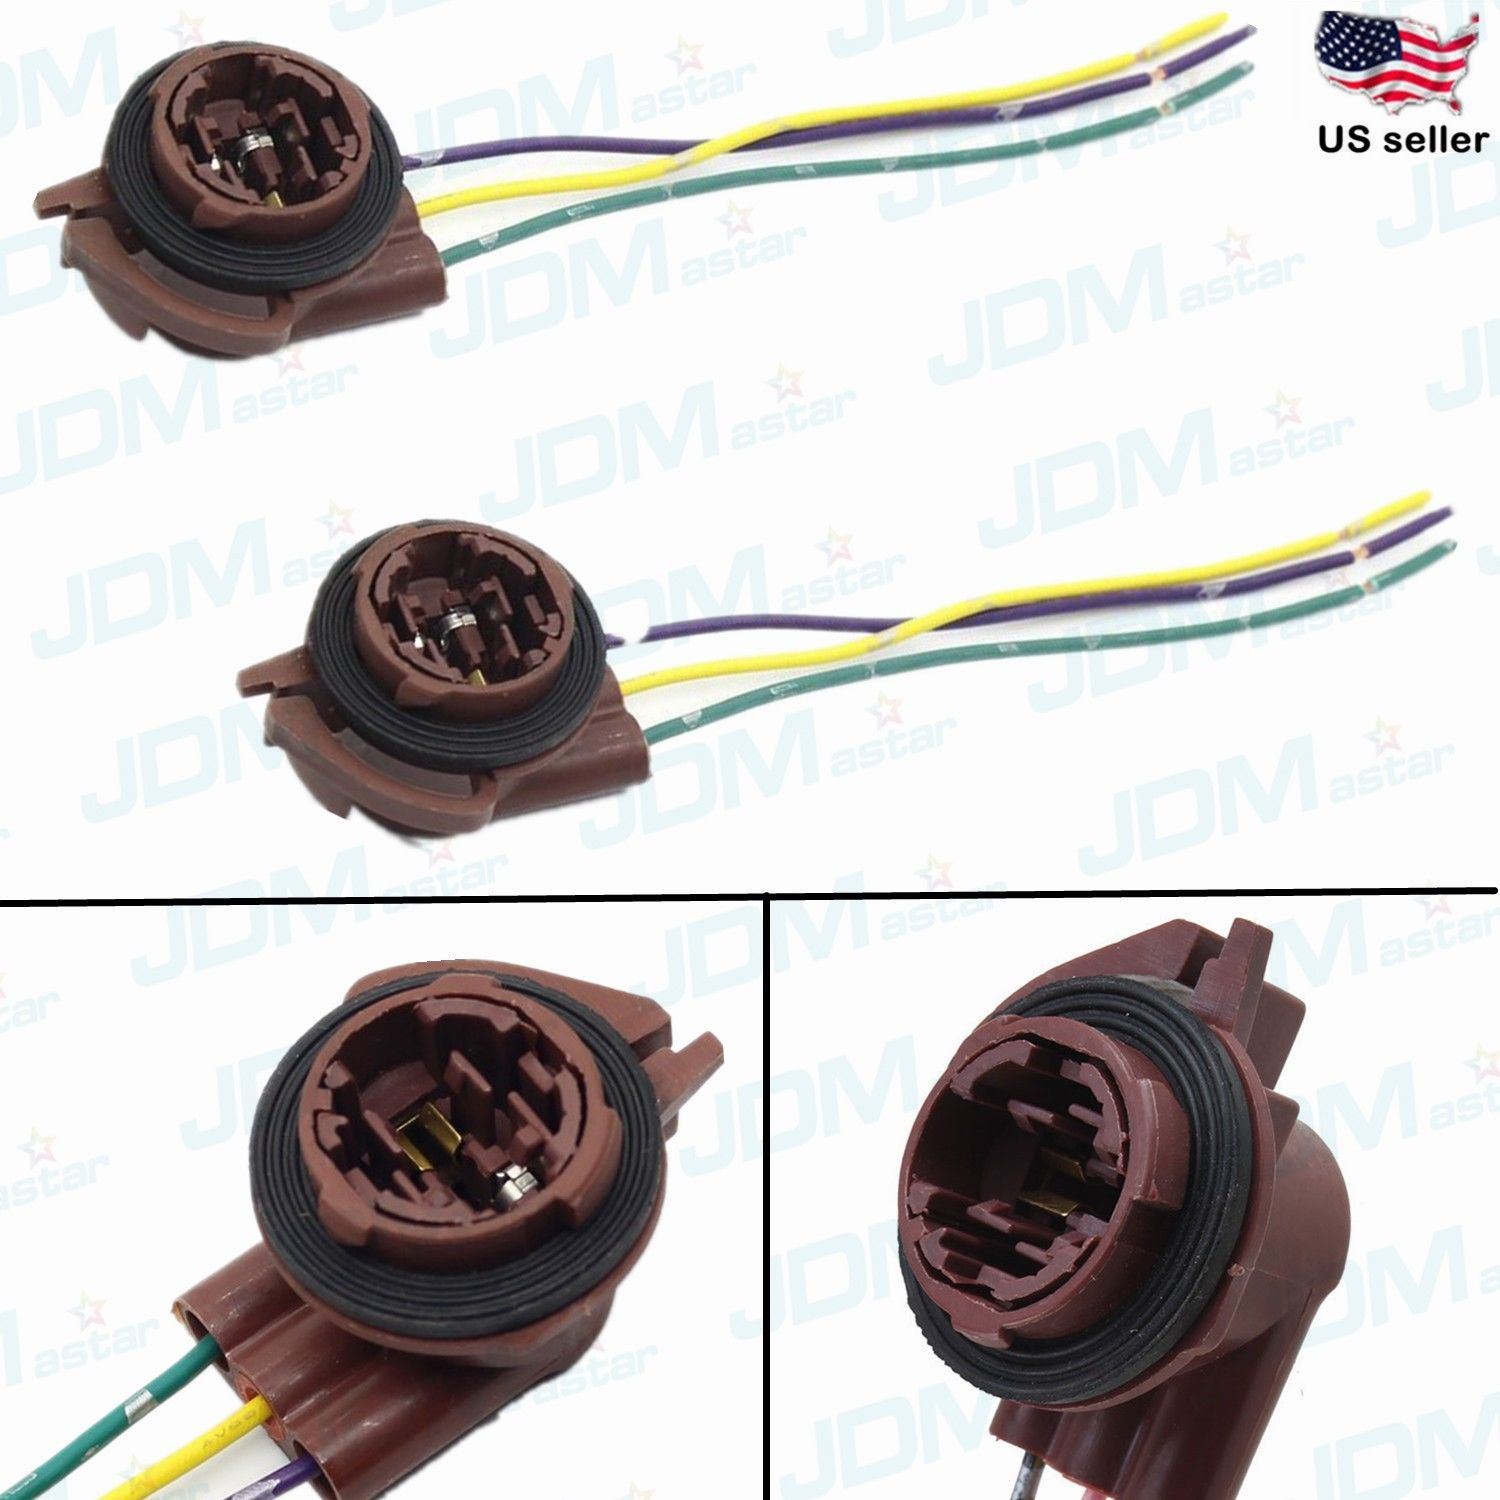 3157A socket harness 1?versionId=luZVsWTmtBB0K6WrOp6TCHwbqxcaKjlO jdm astar 3157 4157na bulb socket turn signal light harness wire 1986 Toyota 4Runner Wiring Harness at n-0.co